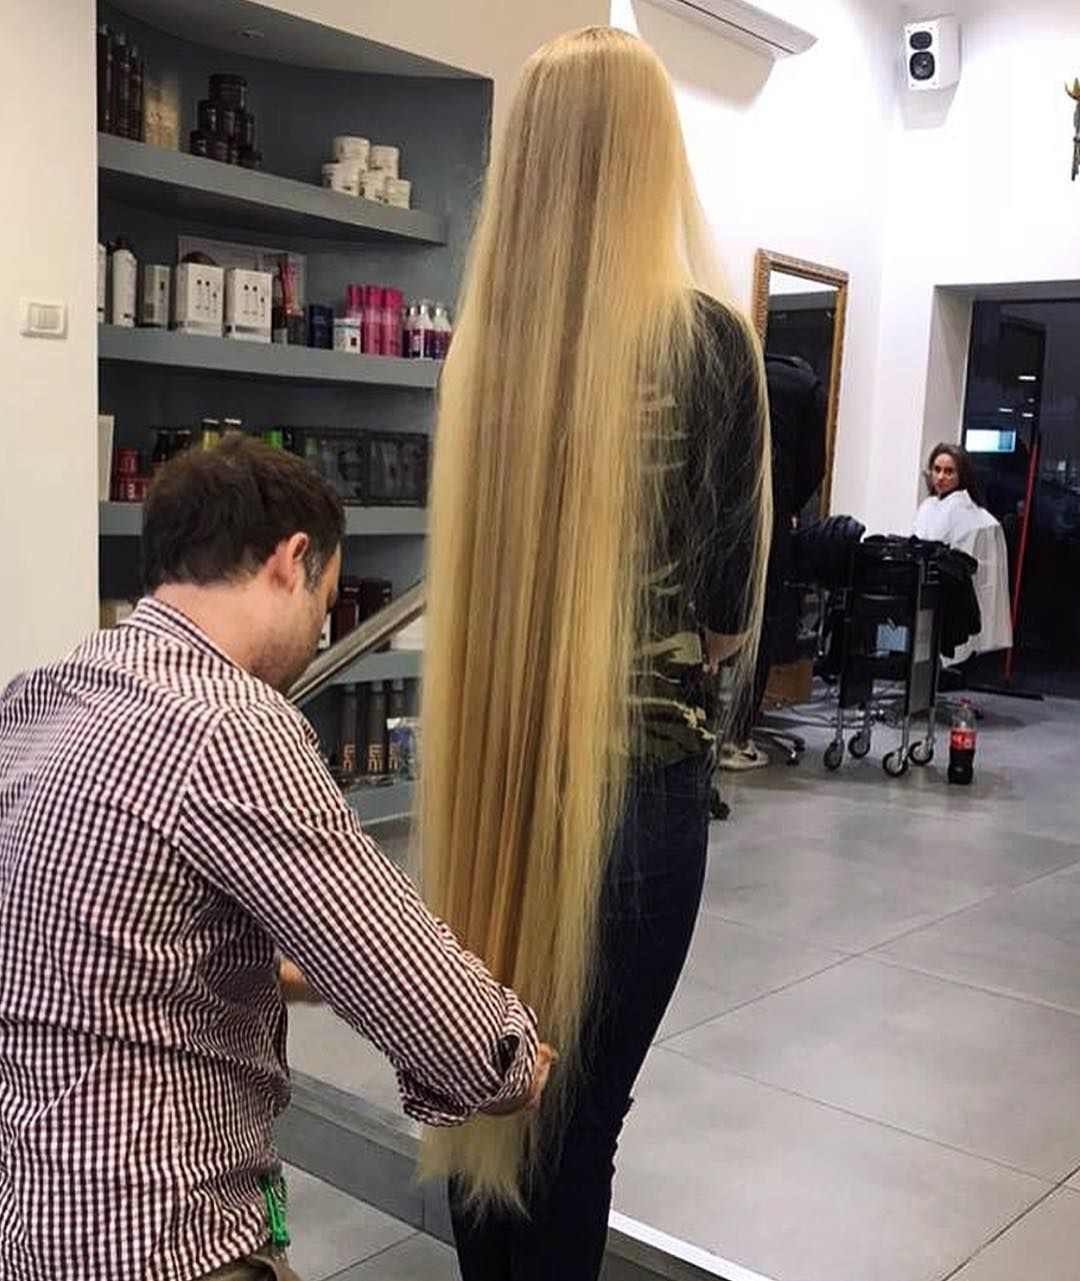 Trim When Needed Xvostik24 When Growing Very Long Hair Trimming Regularly But Not Too Often Is Neede Long Hair Dos Long Hair Women Extremely Long Hair